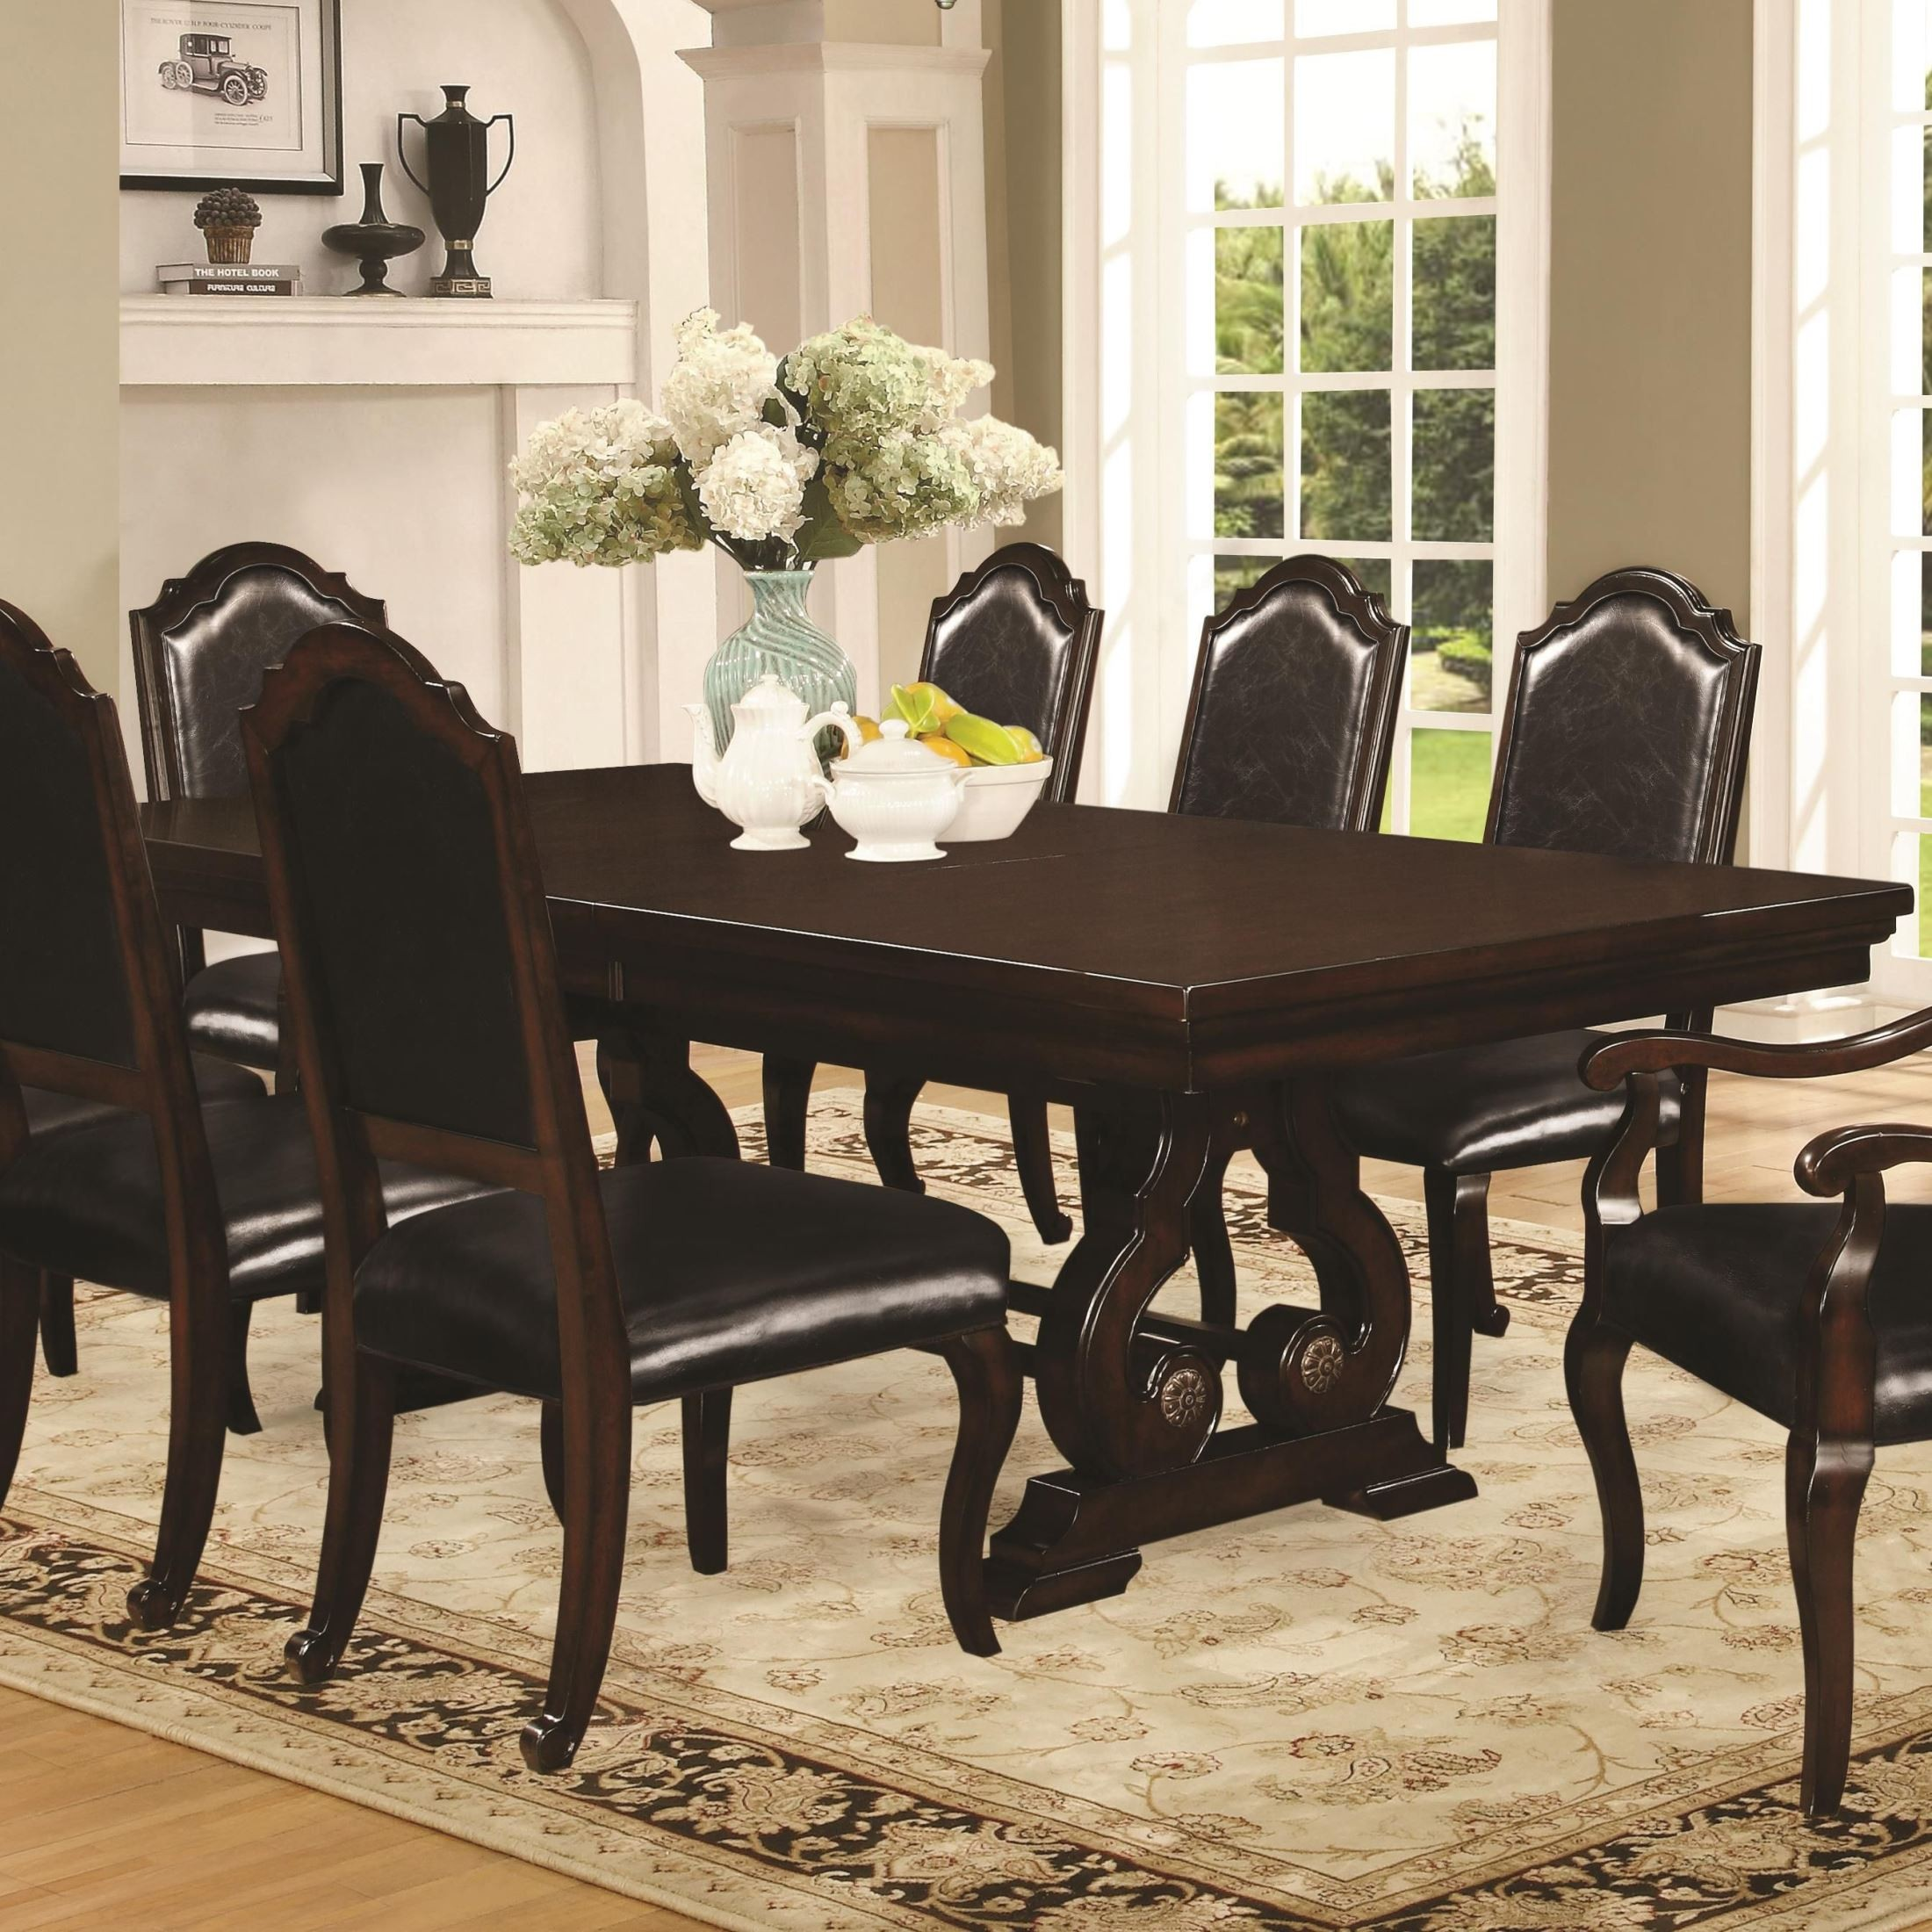 Bedford Dark Mahogany Rectangular Trestle Dining Table  : bedford10560105601 b0 from colemanfurniture.com size 2200 x 2200 jpeg 729kB